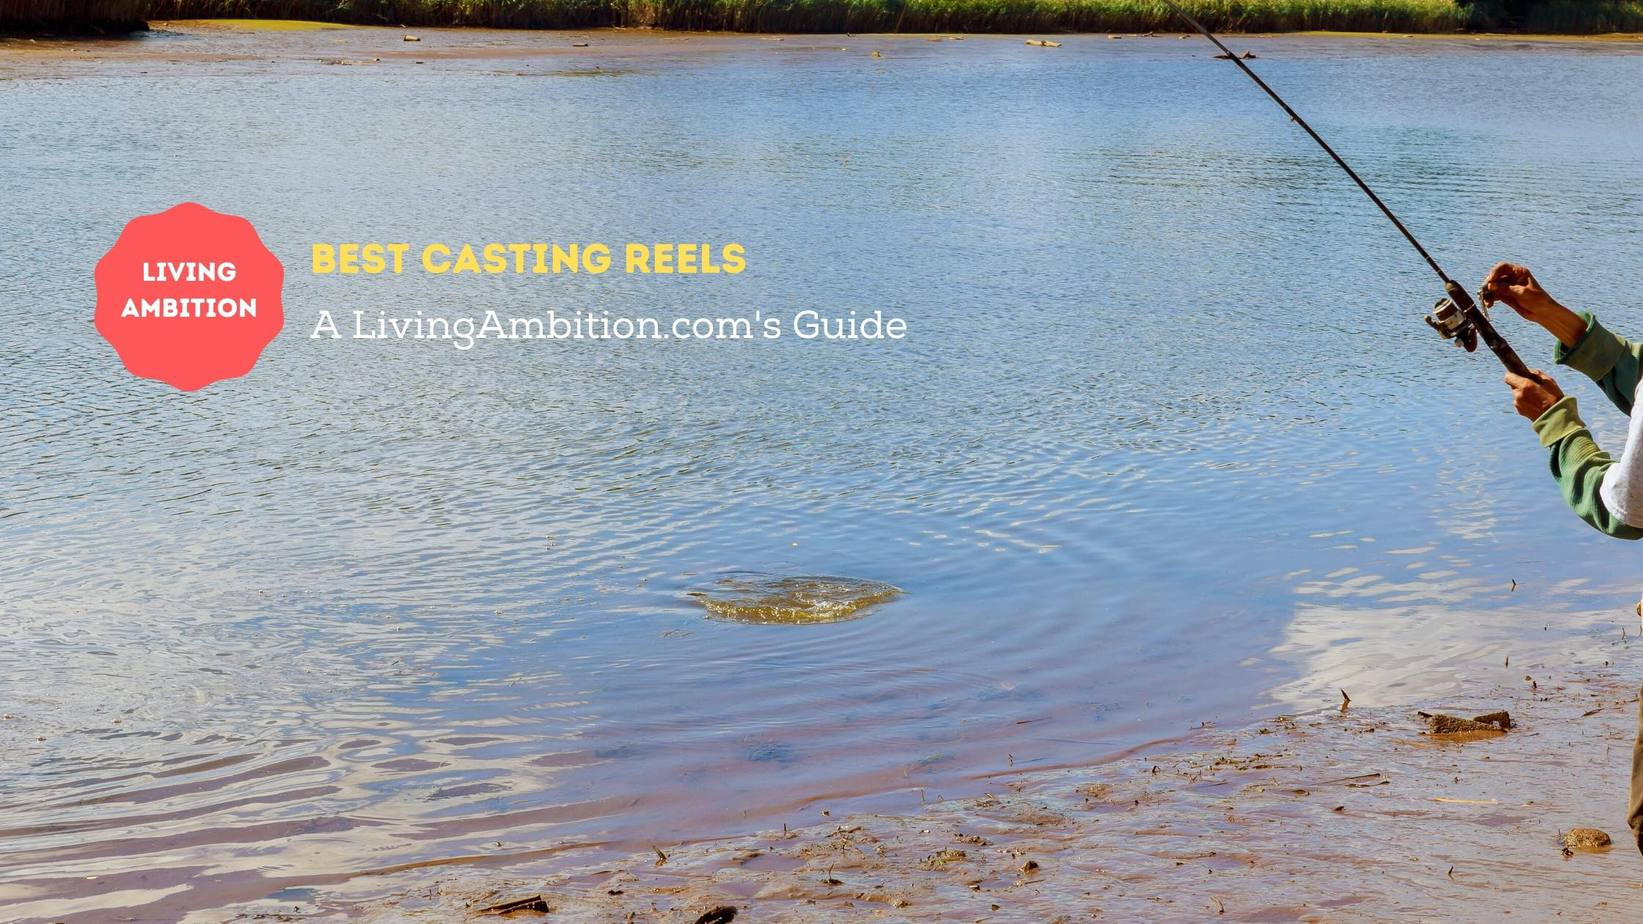 Best Casting Reels